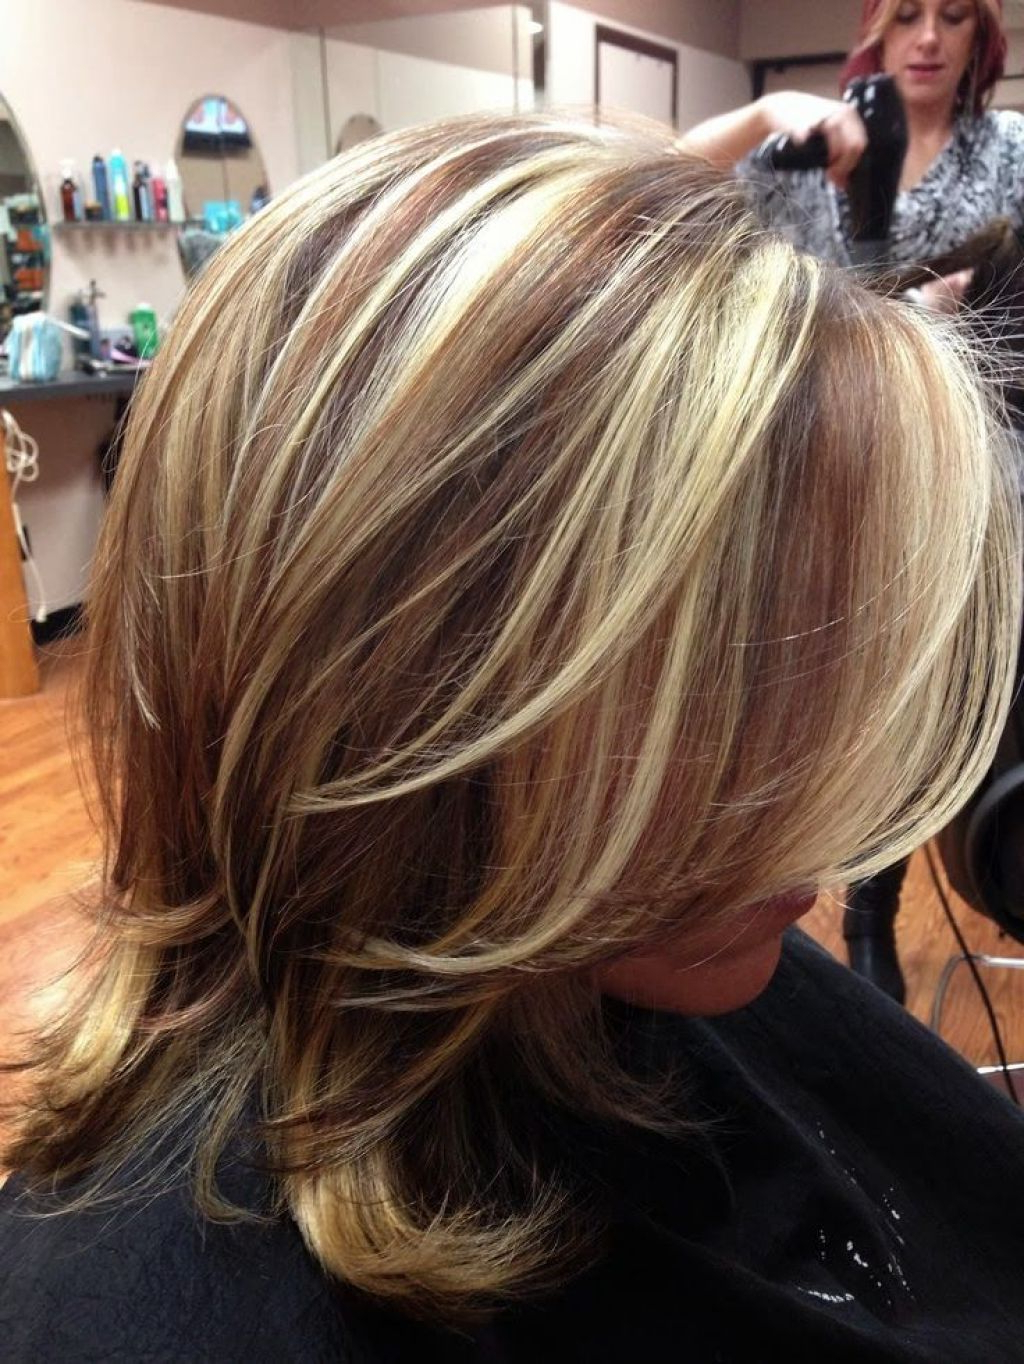 Favorite Fringy Layers Hairstyles With Dimensional Highlights Intended For Hairstyles For Long Hair Highlights #hairstyles (View 3 of 20)